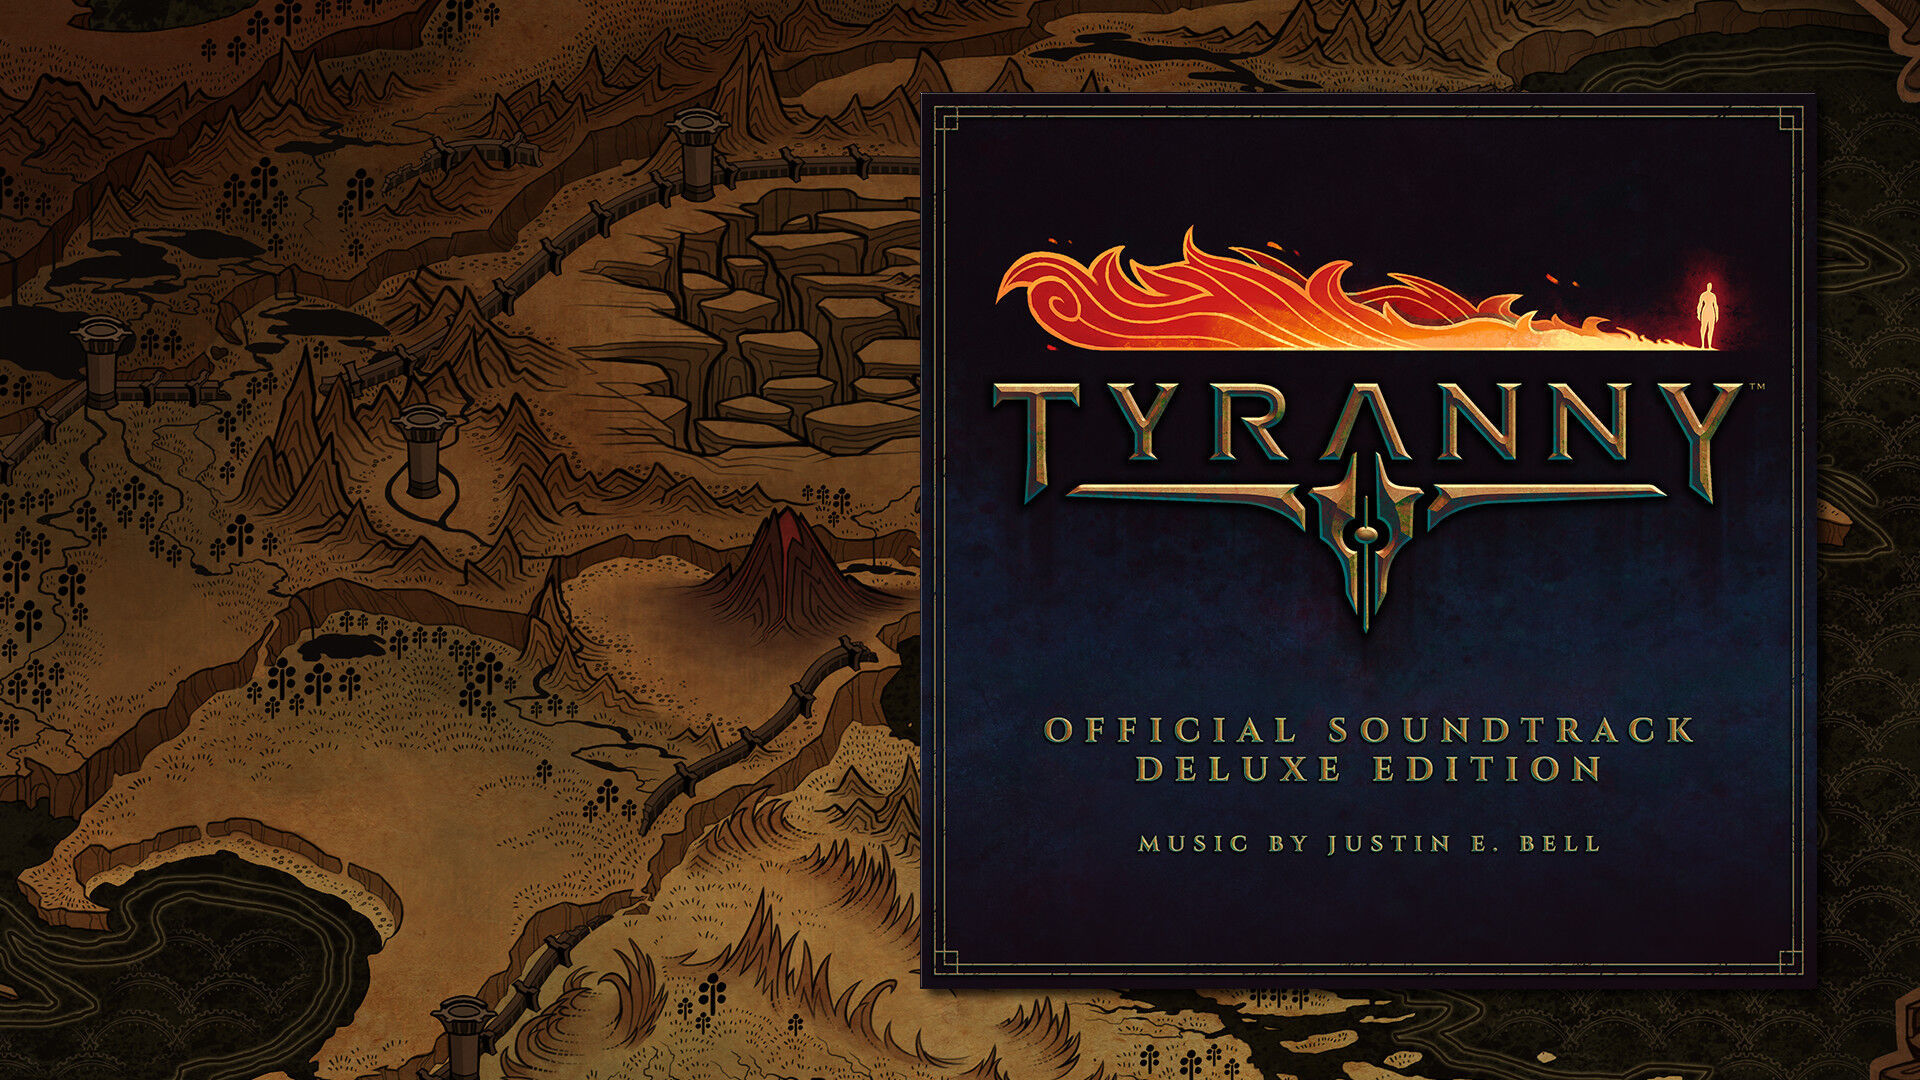 Tyranny - Official Soundtrack Deluxe Edition